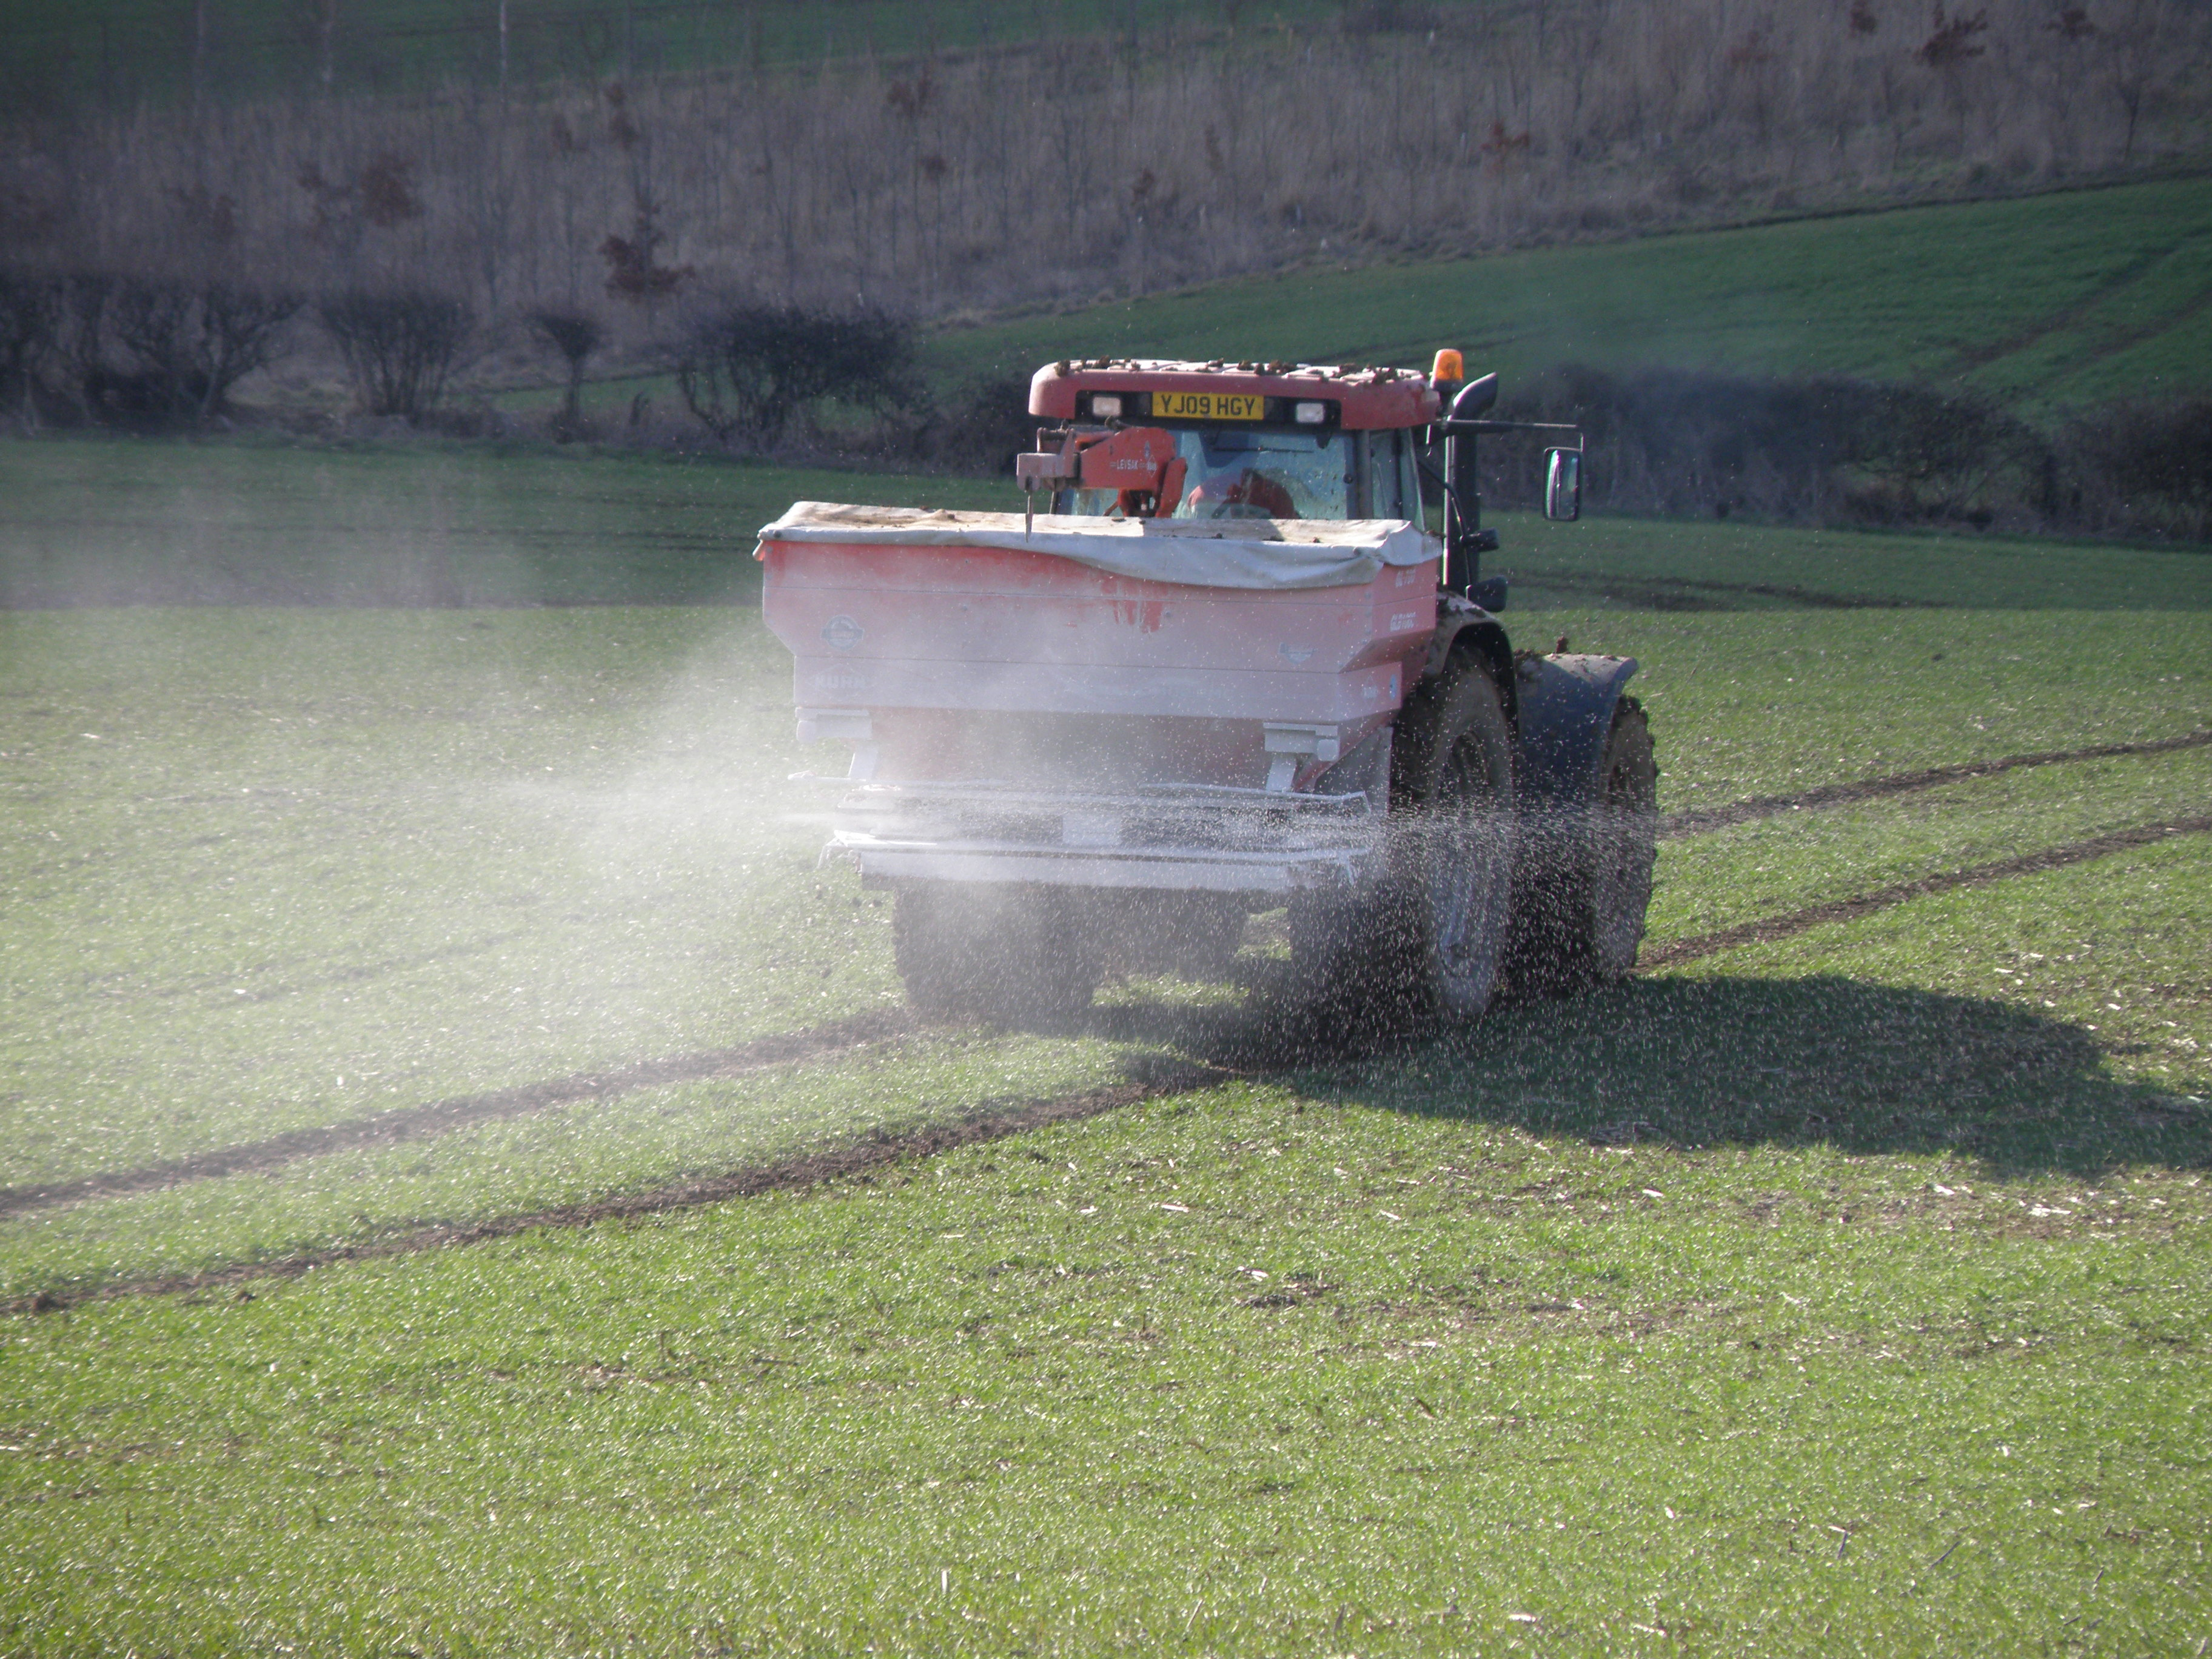 Ammonium nitrate fertilizer being applied to winter wheat. Almost all ammonia used for fertilizer is derived from natural gas.